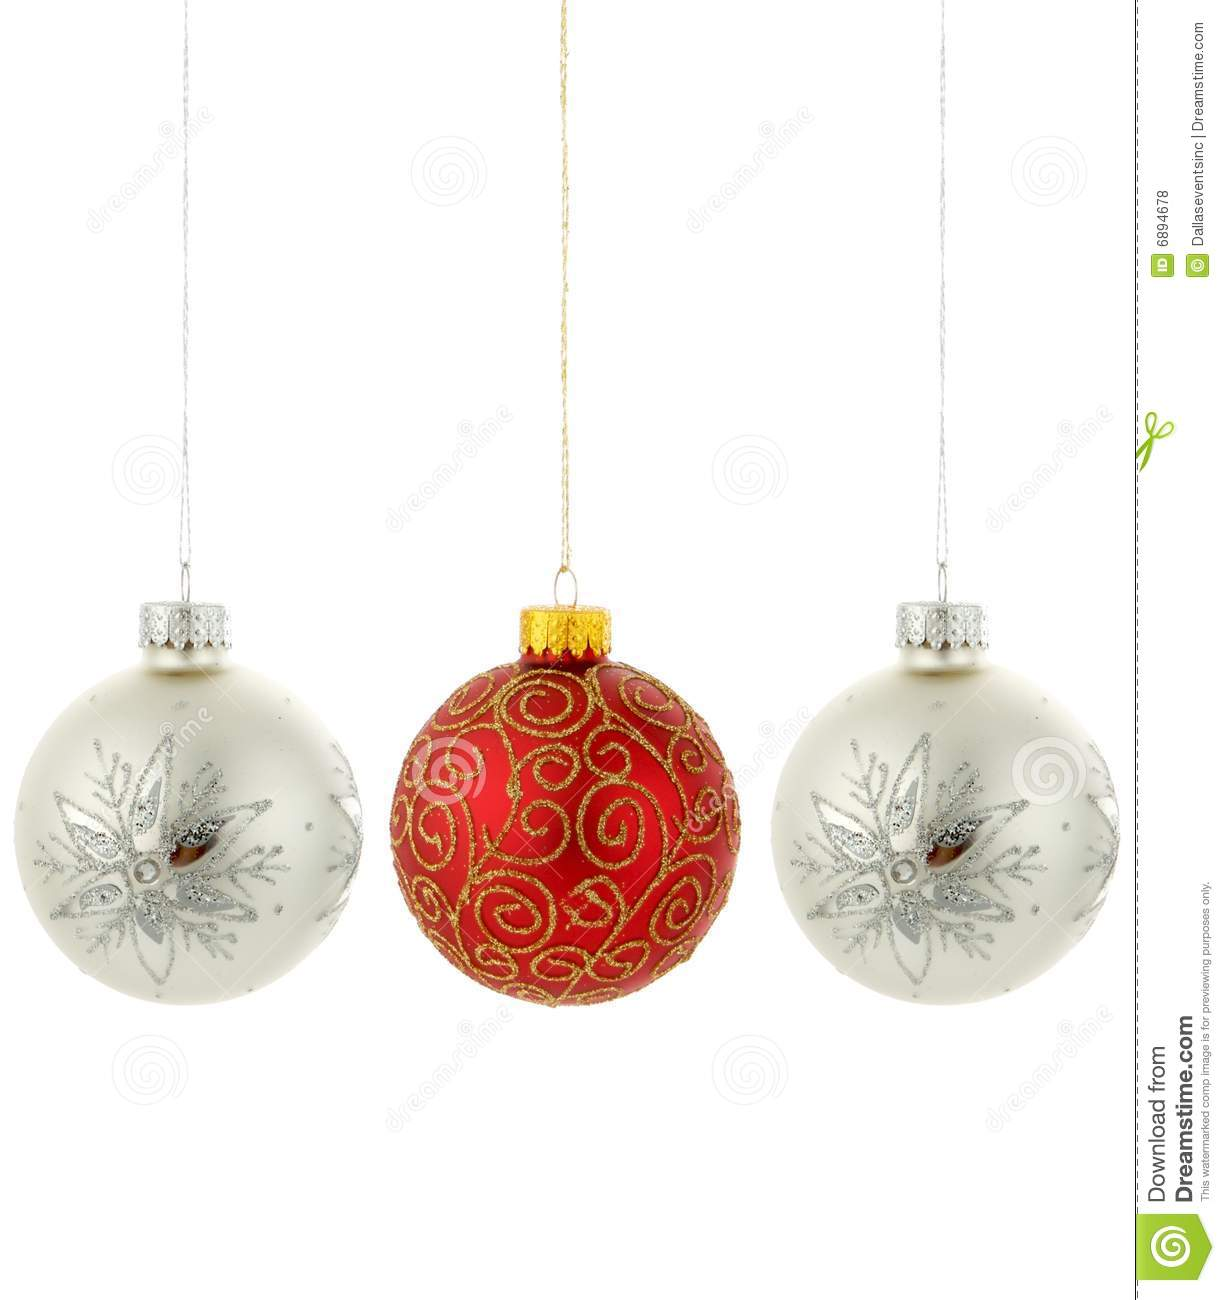 Christmas tree ornaments hanging stock photo image of for Hanging christmas decorations